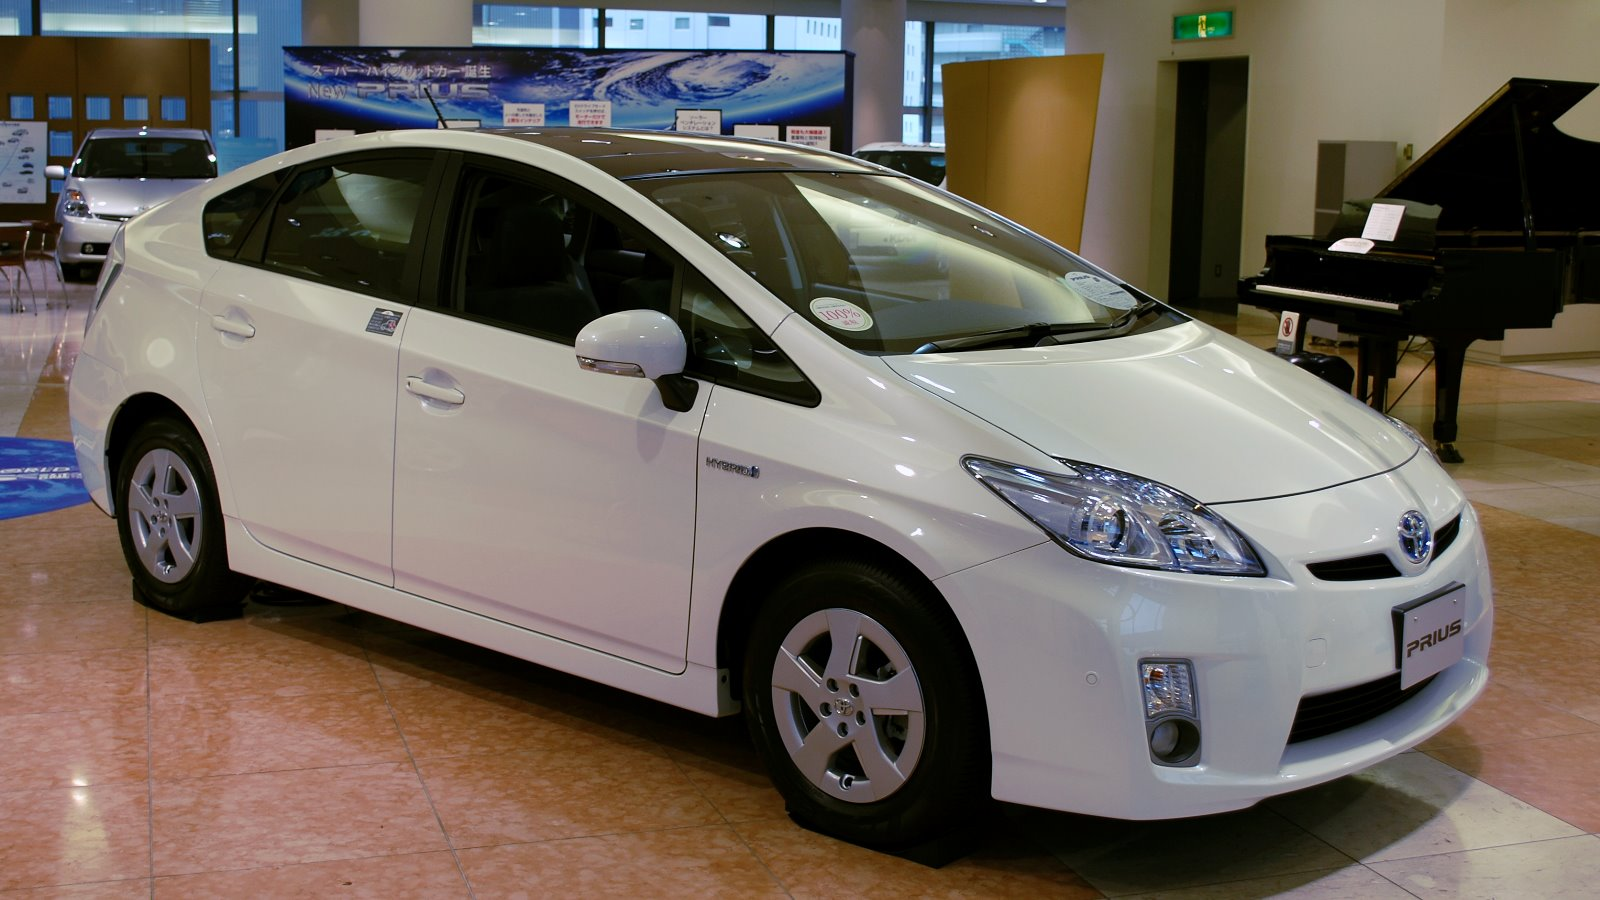 2014 toyota yaris hybrid for sale used cars reviews photos specs